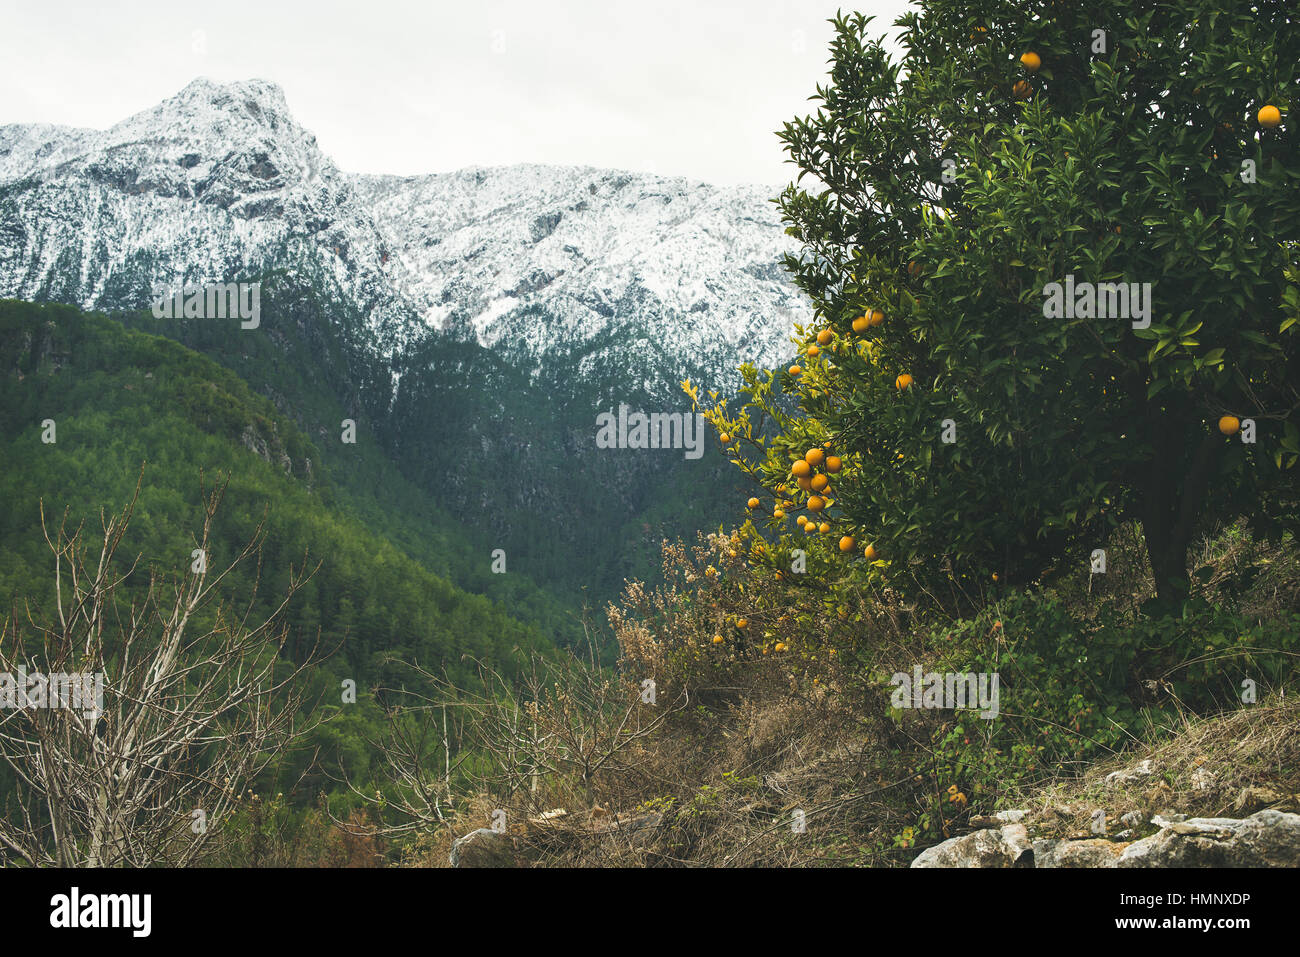 Trees with oranges in mountain garden and snowy peaks - Stock Image